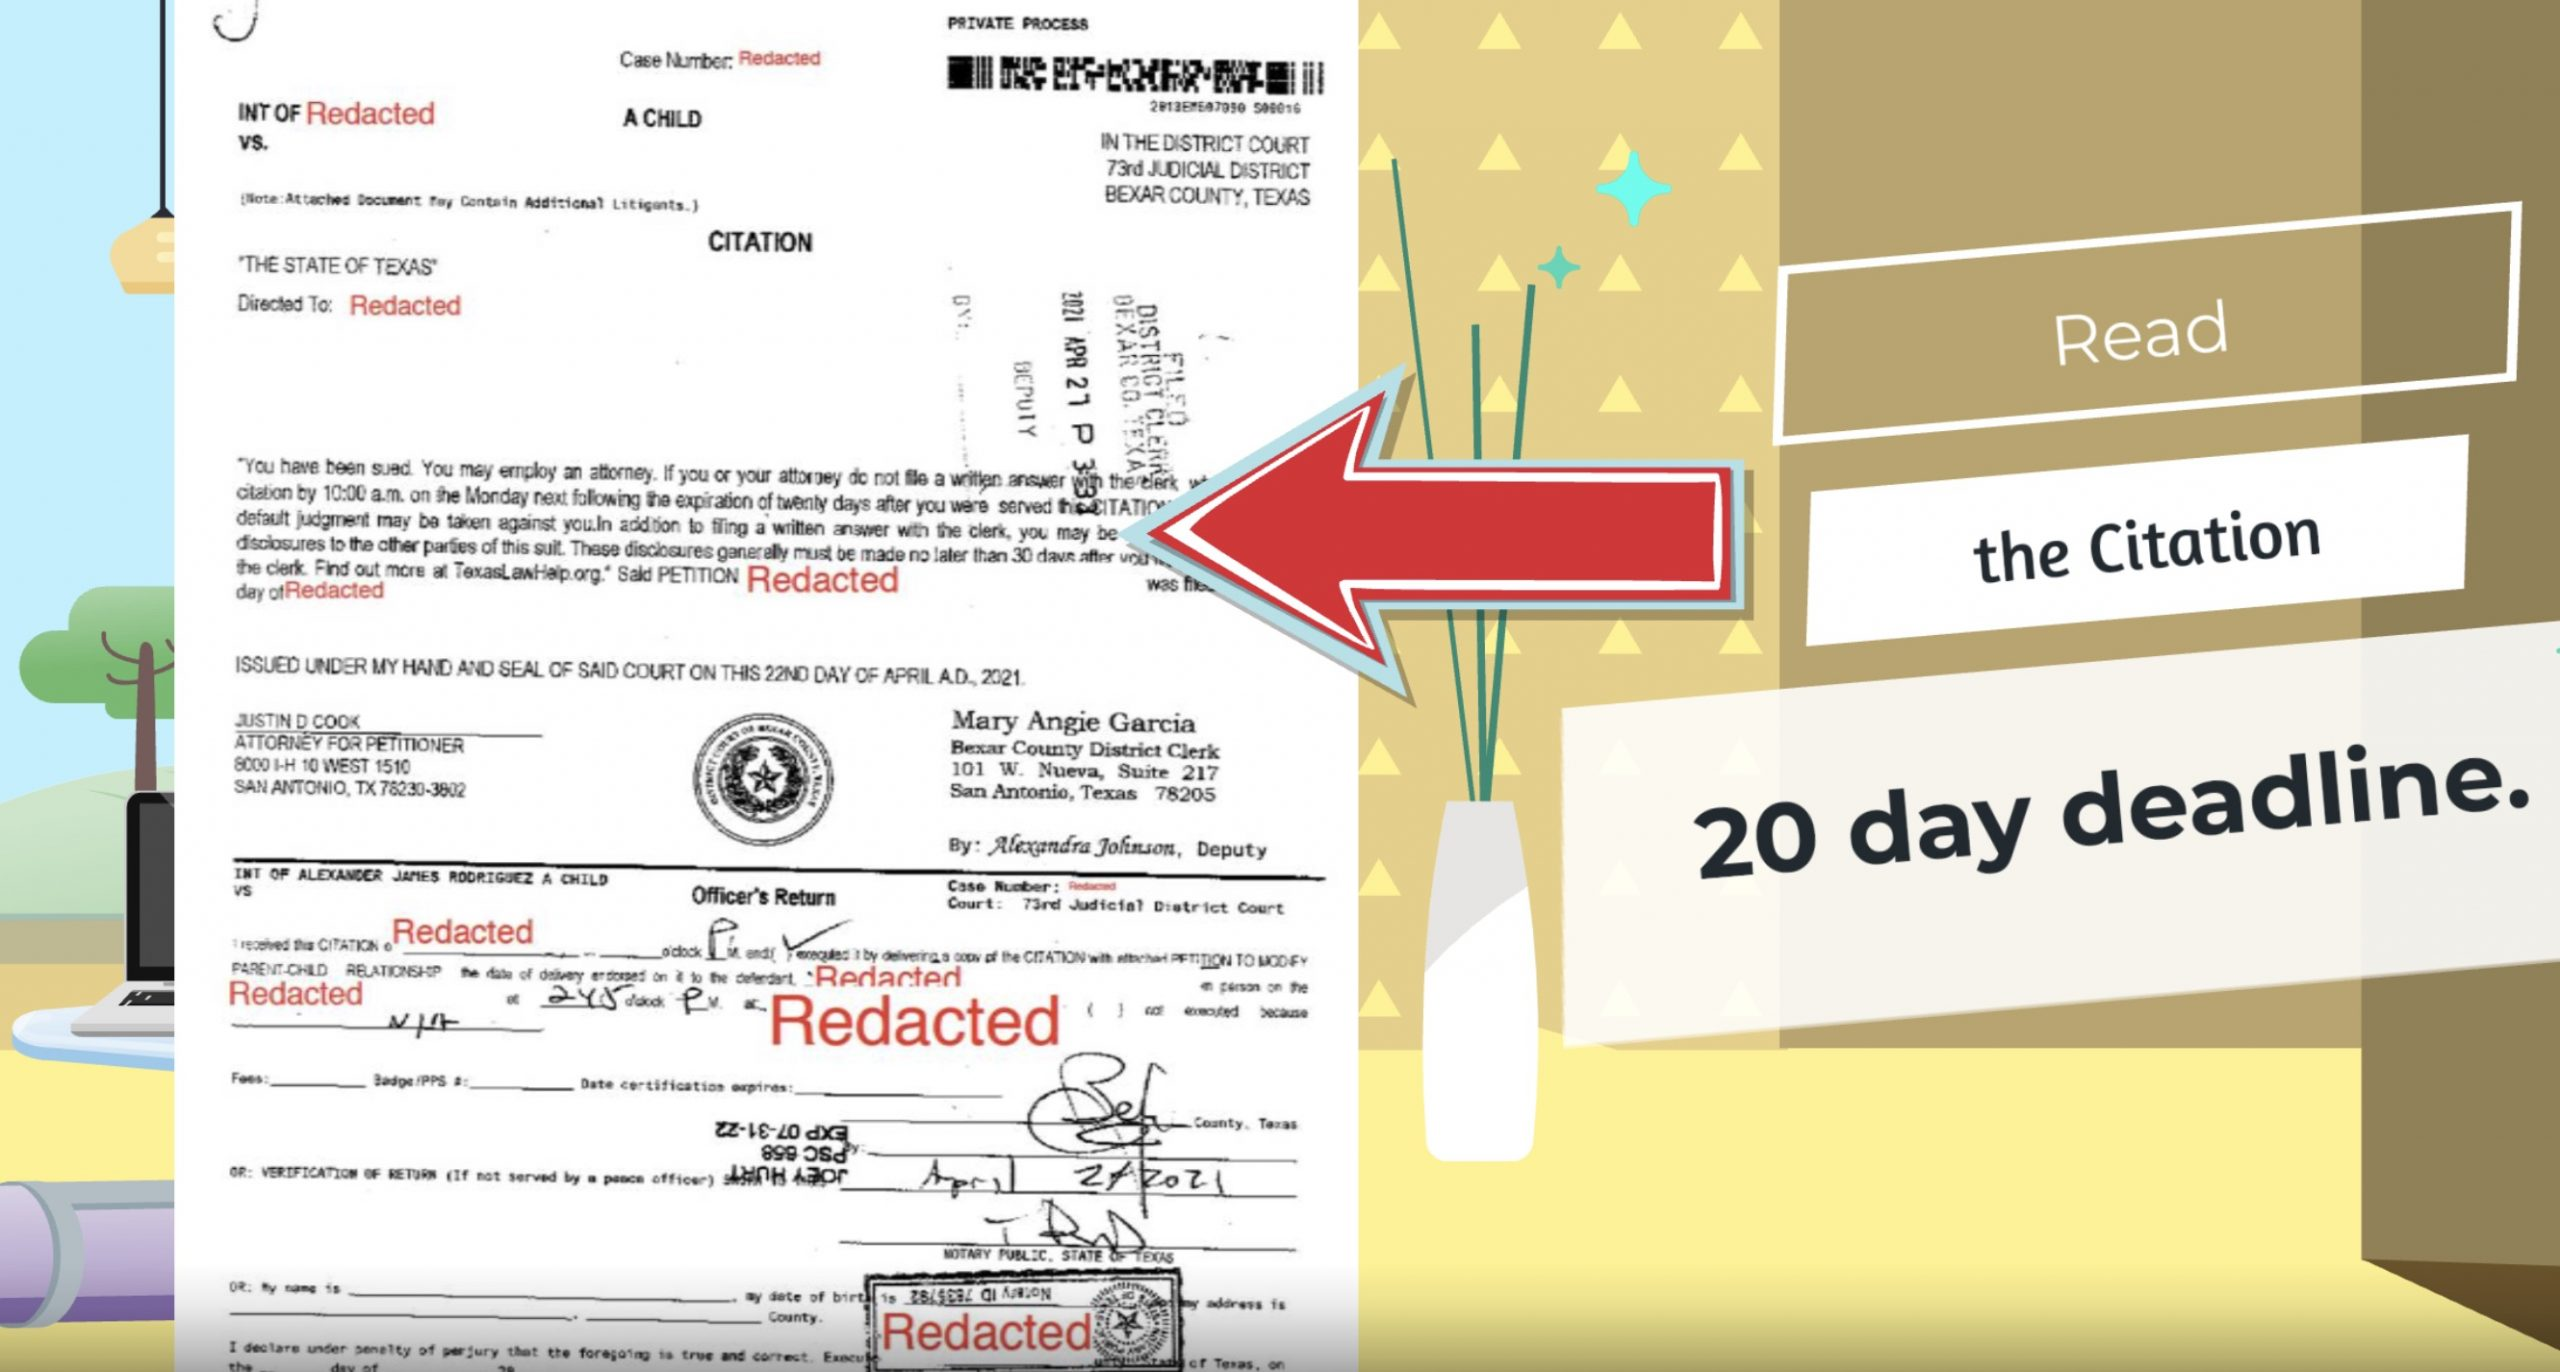 deadline for filing answer to divorce papers